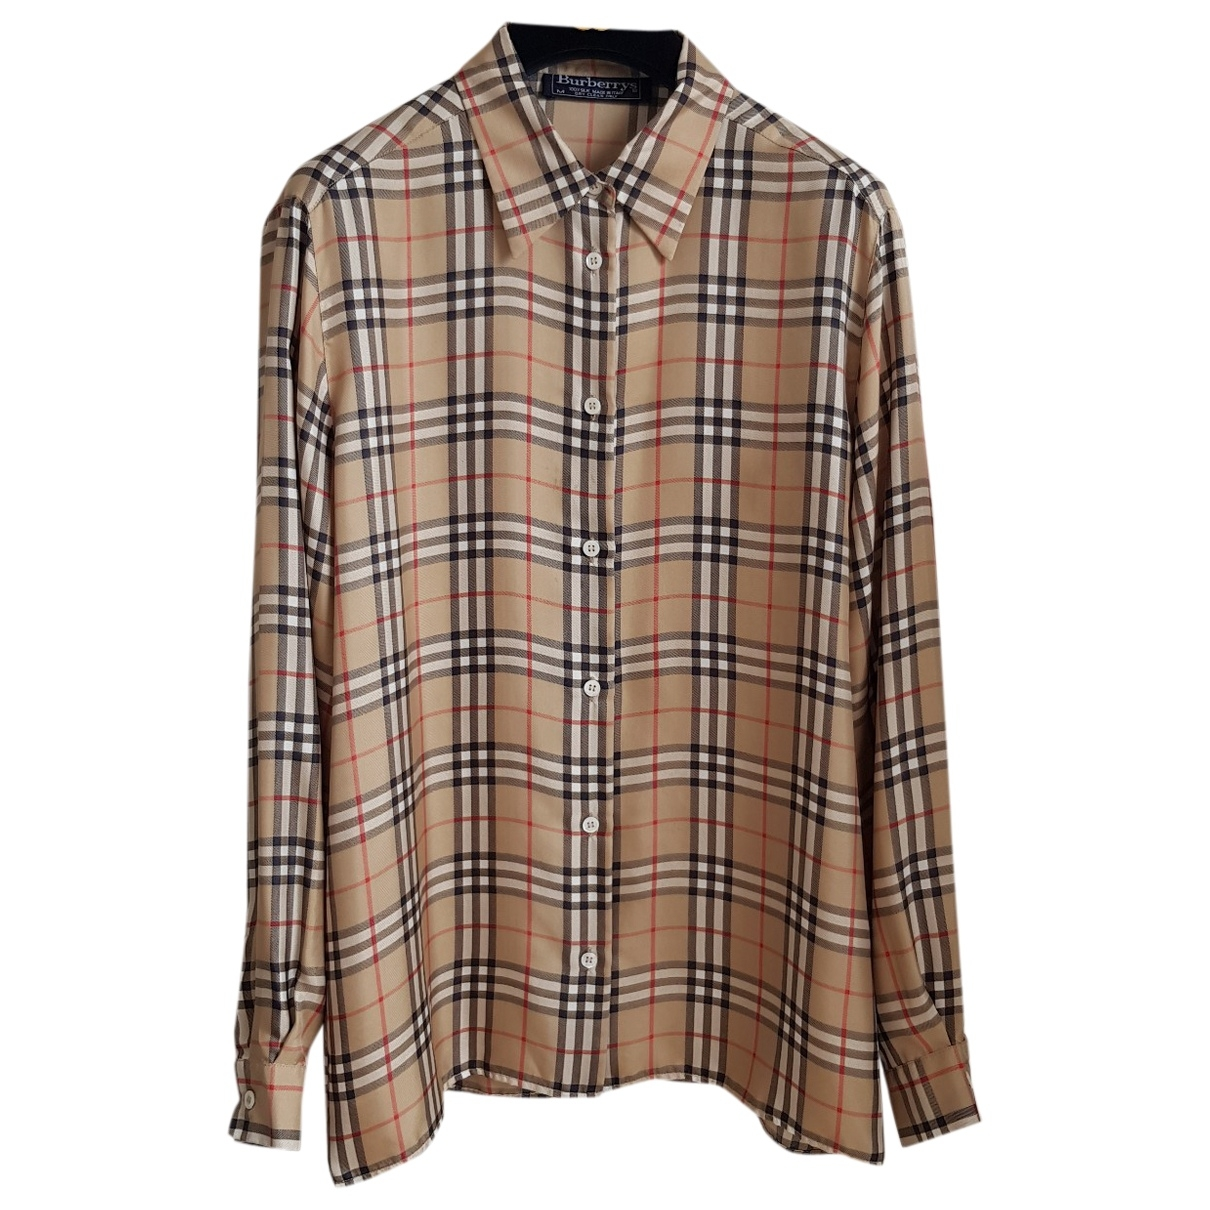 Burberry \N Beige Cotton  top for Women M International